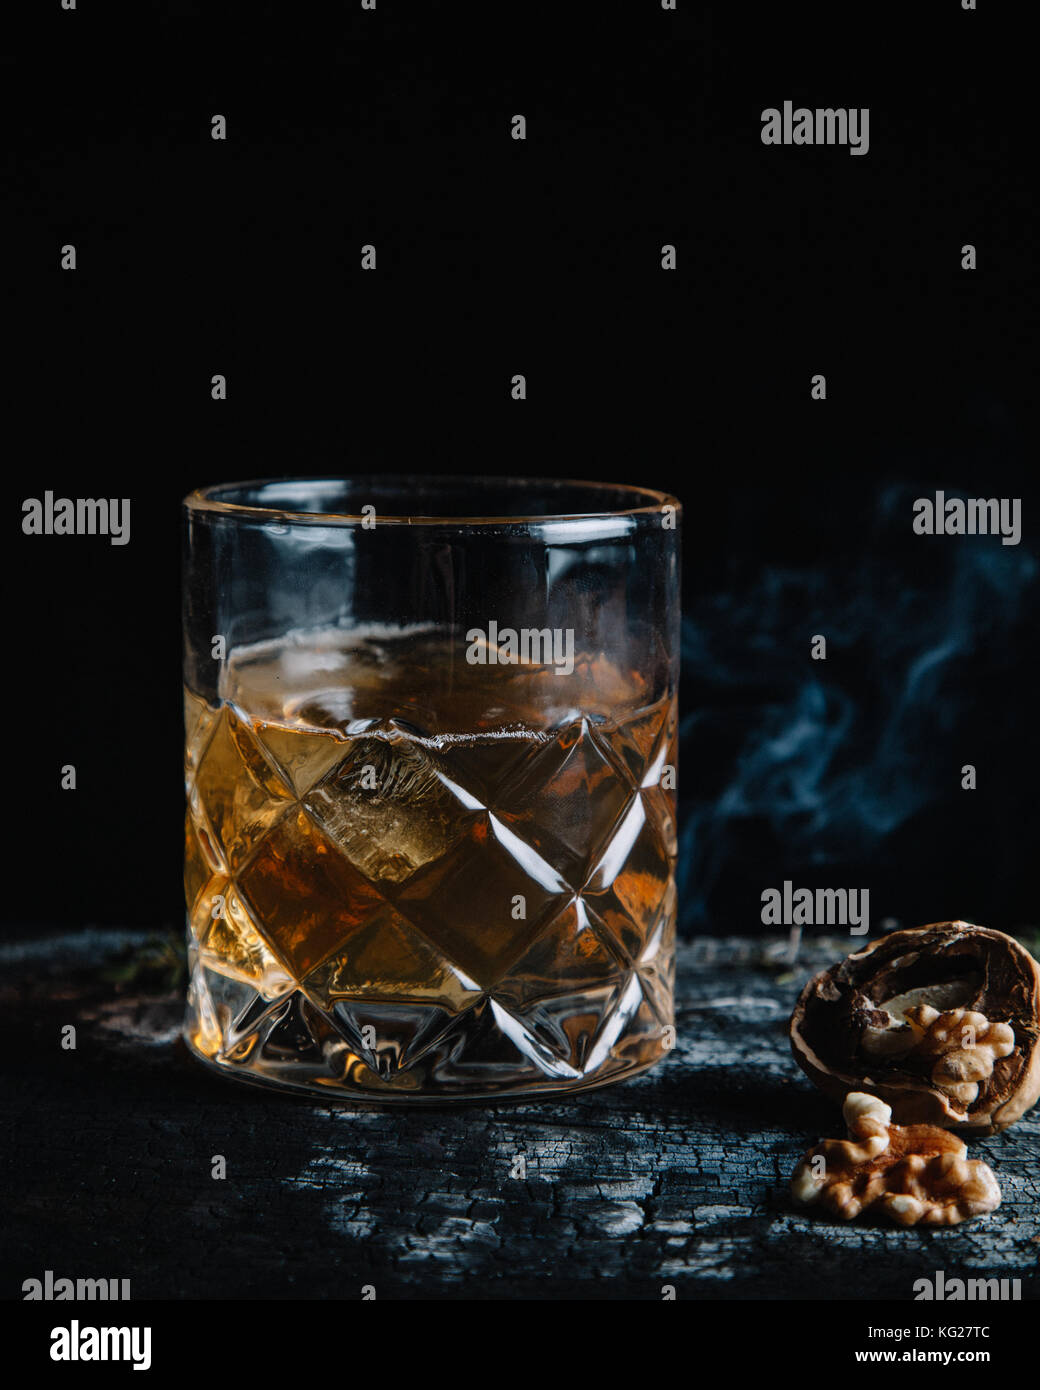 Cocktail à l'ancienne sur fond sombre Photo Stock